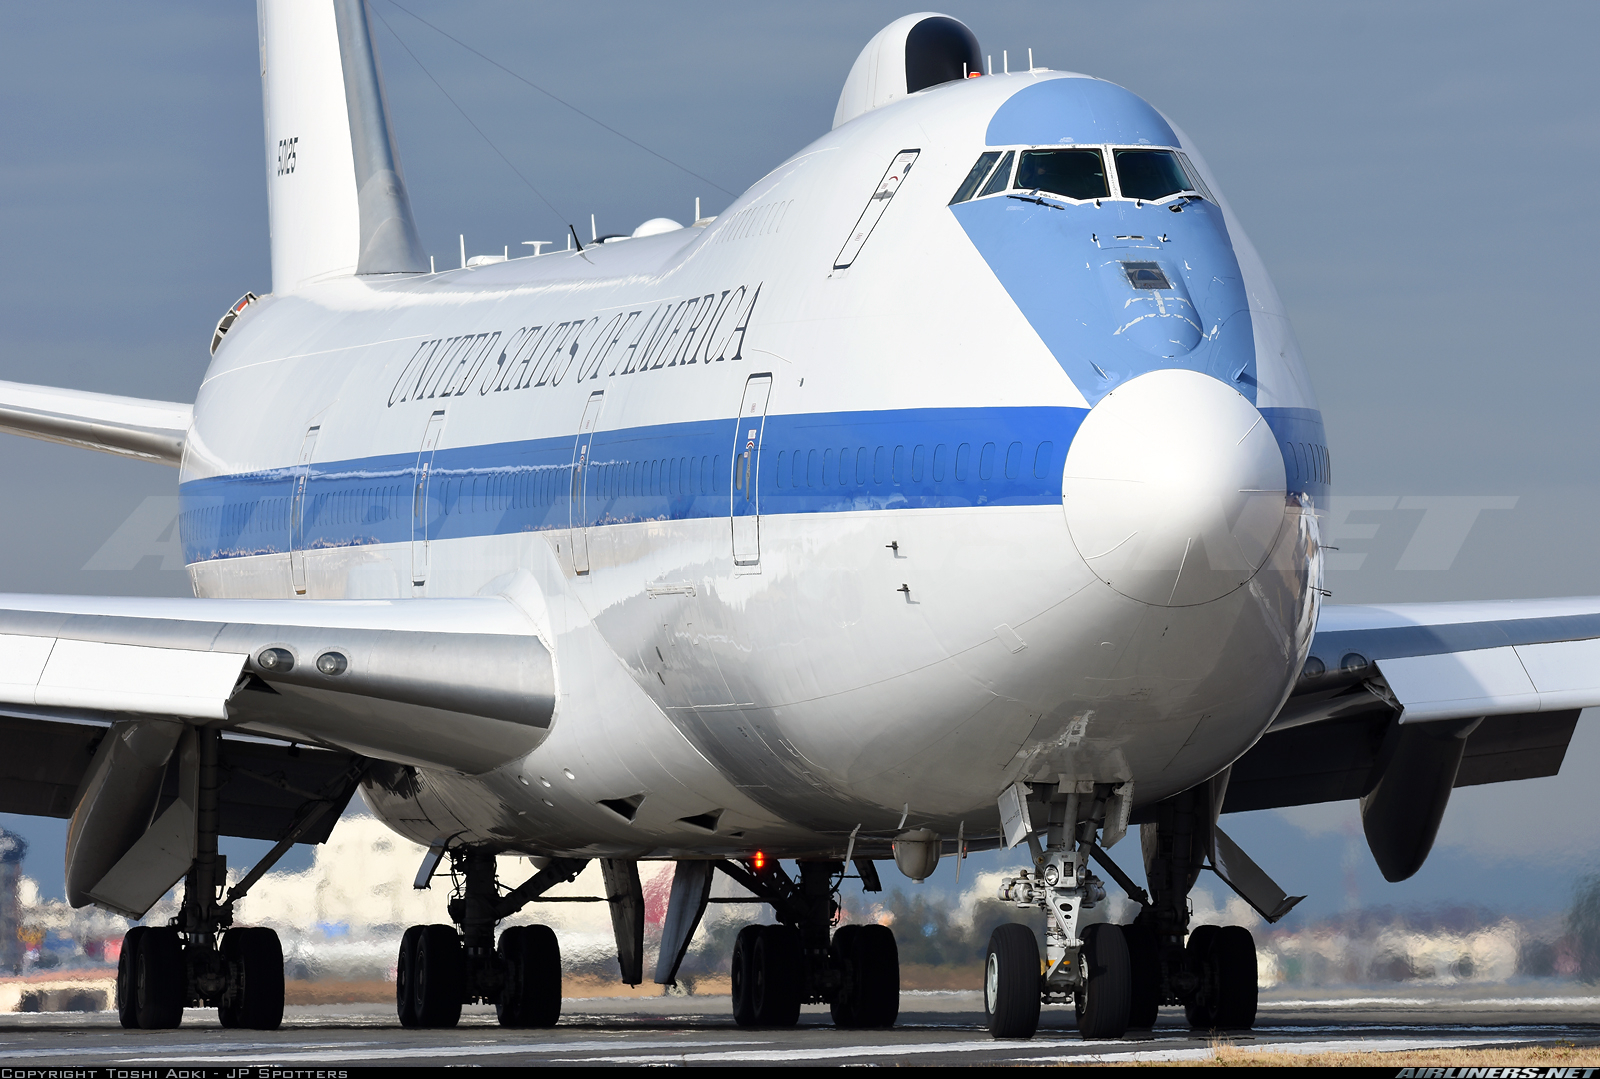 Boeing E-4B (747-200B) - USA - Air Force | Aviation Photo #4177249 | Airliners.net